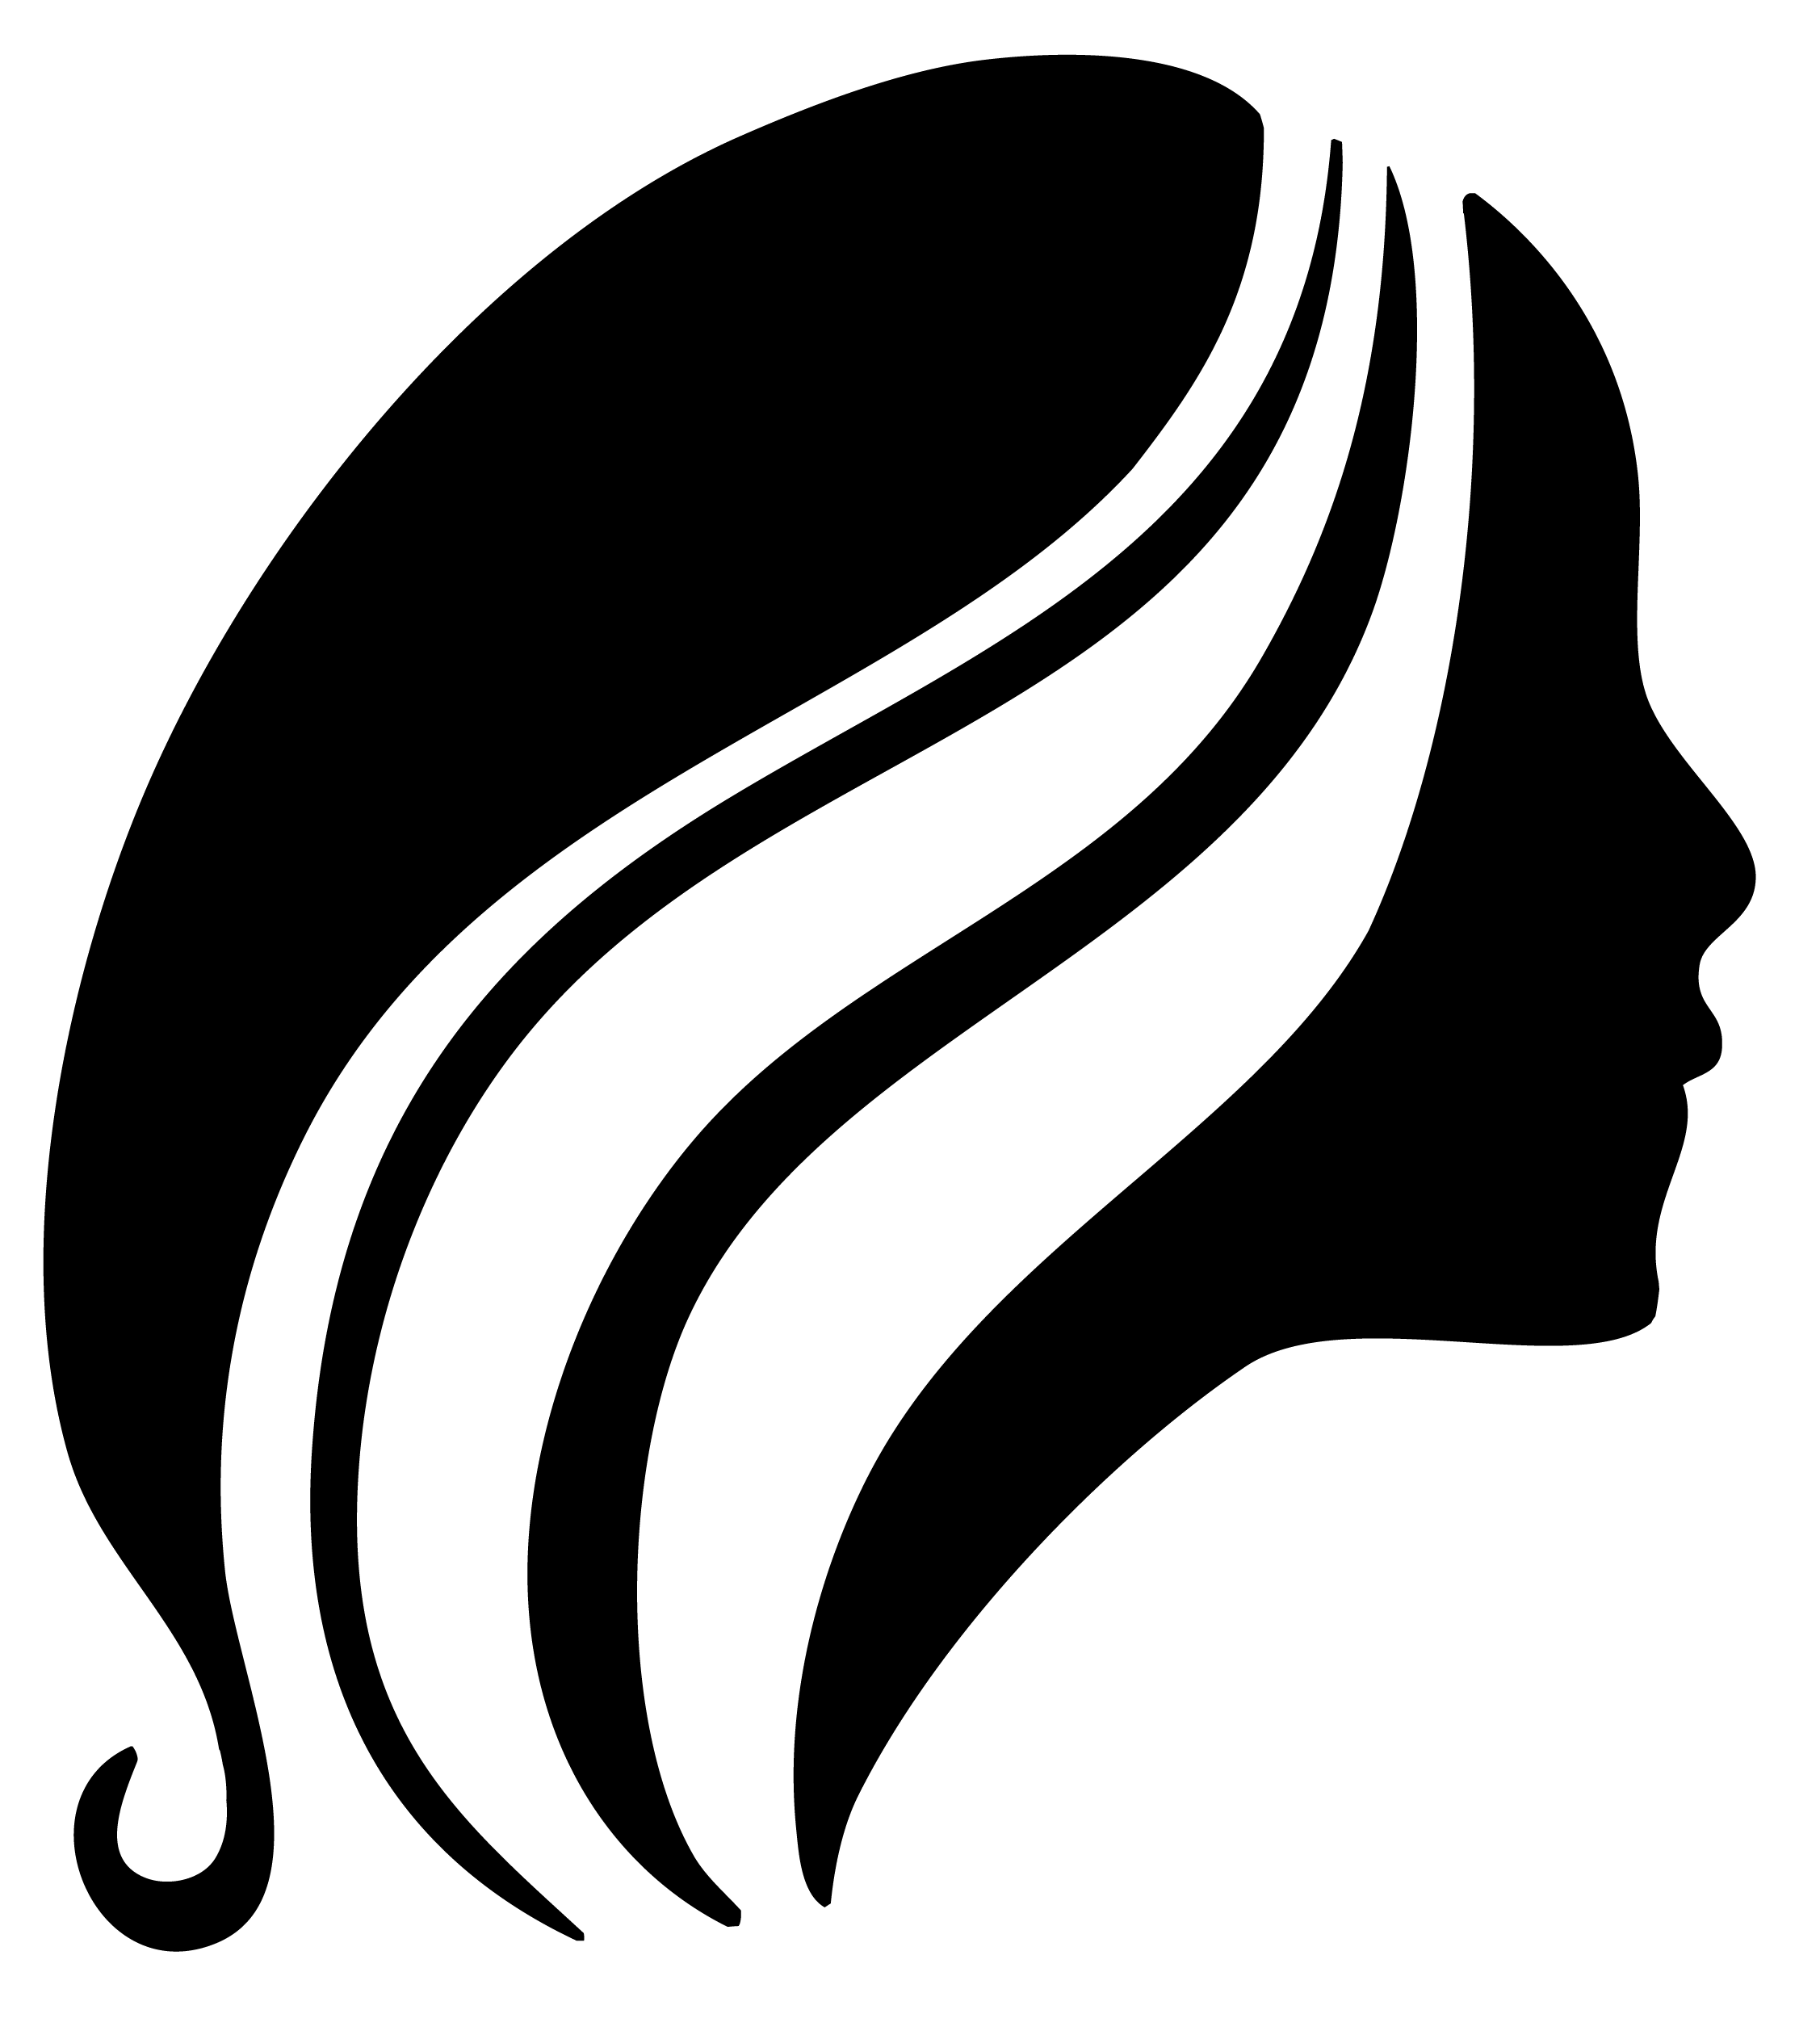 Hair salon clip art png. Images of spacehero wwwimgkidcom